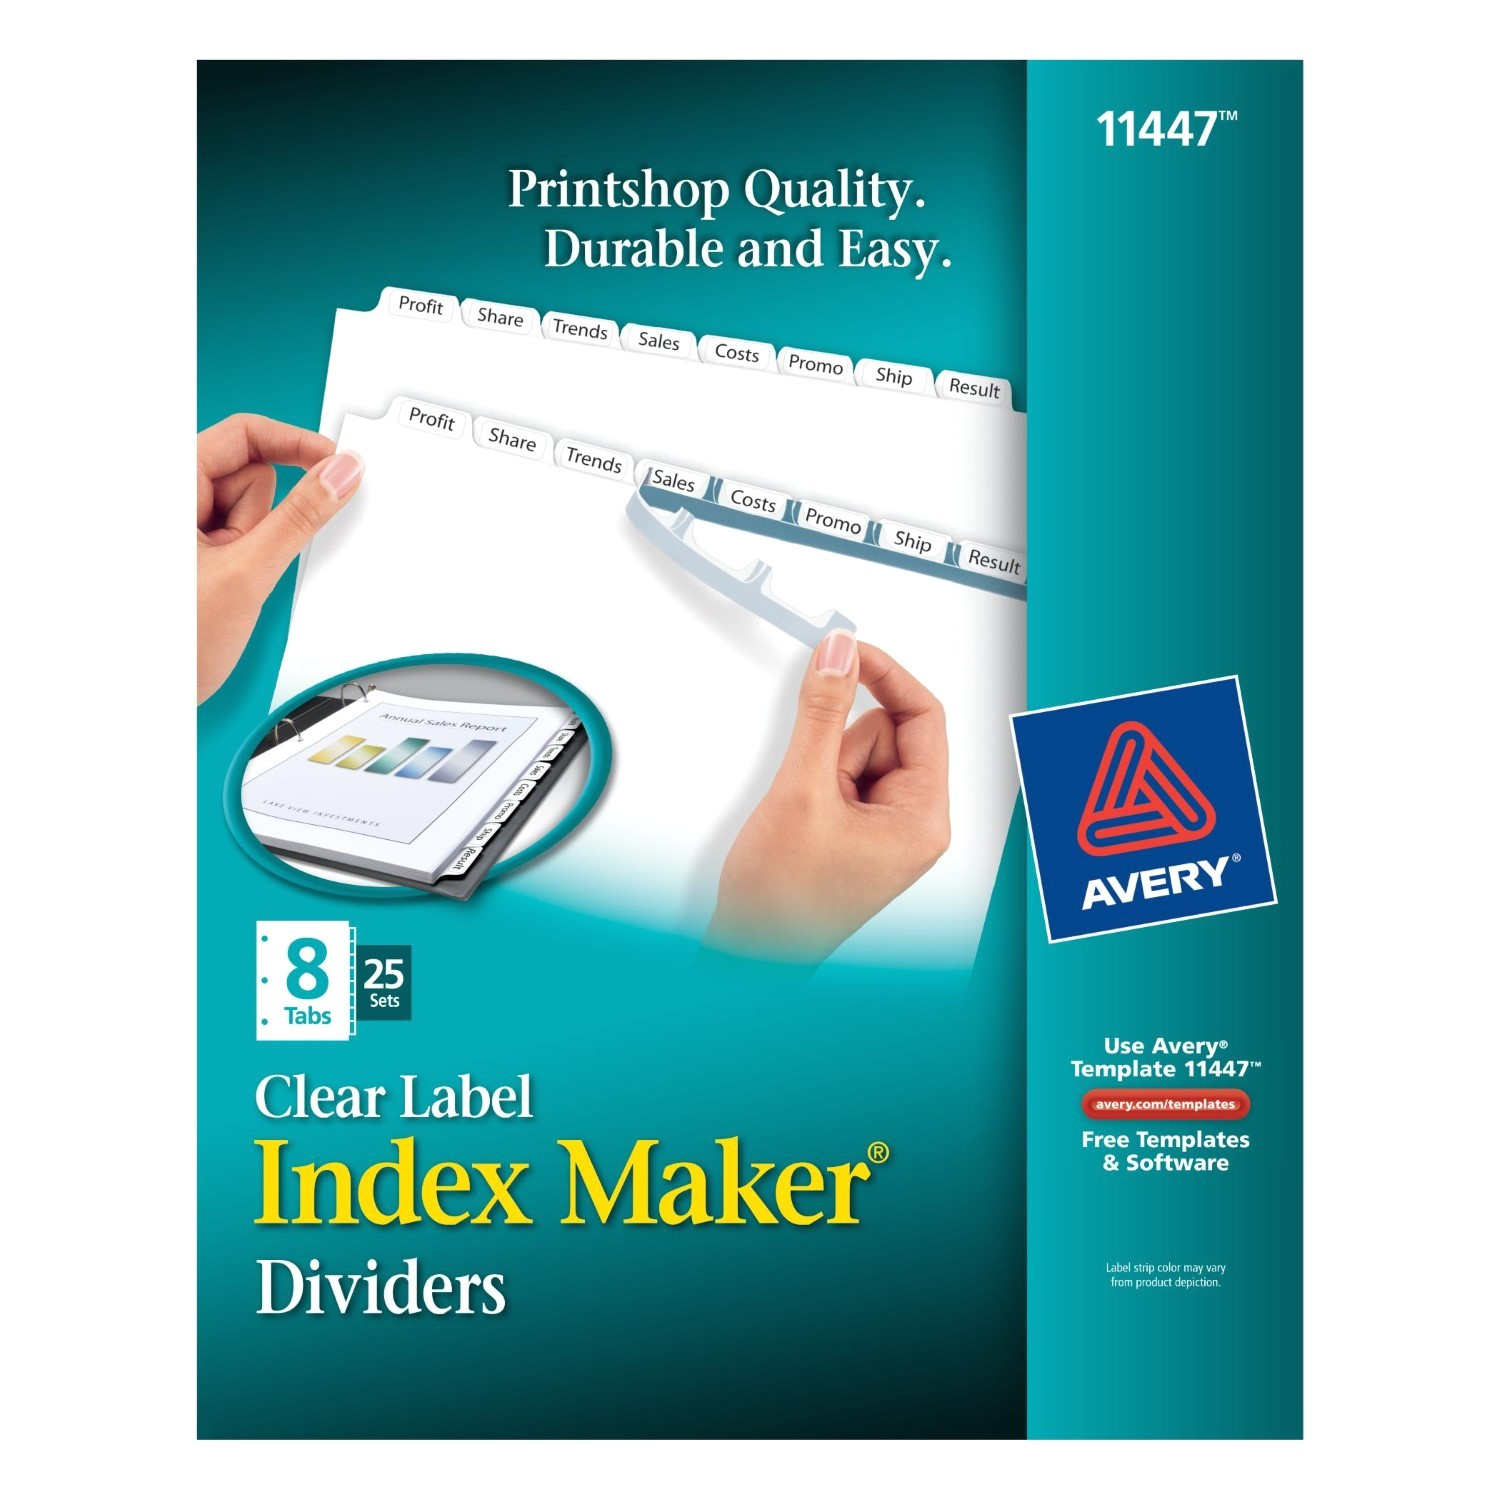 Avery 8 Tab Template 11419 Avery Index Maker Label Dividers White 8 Tabs Divider